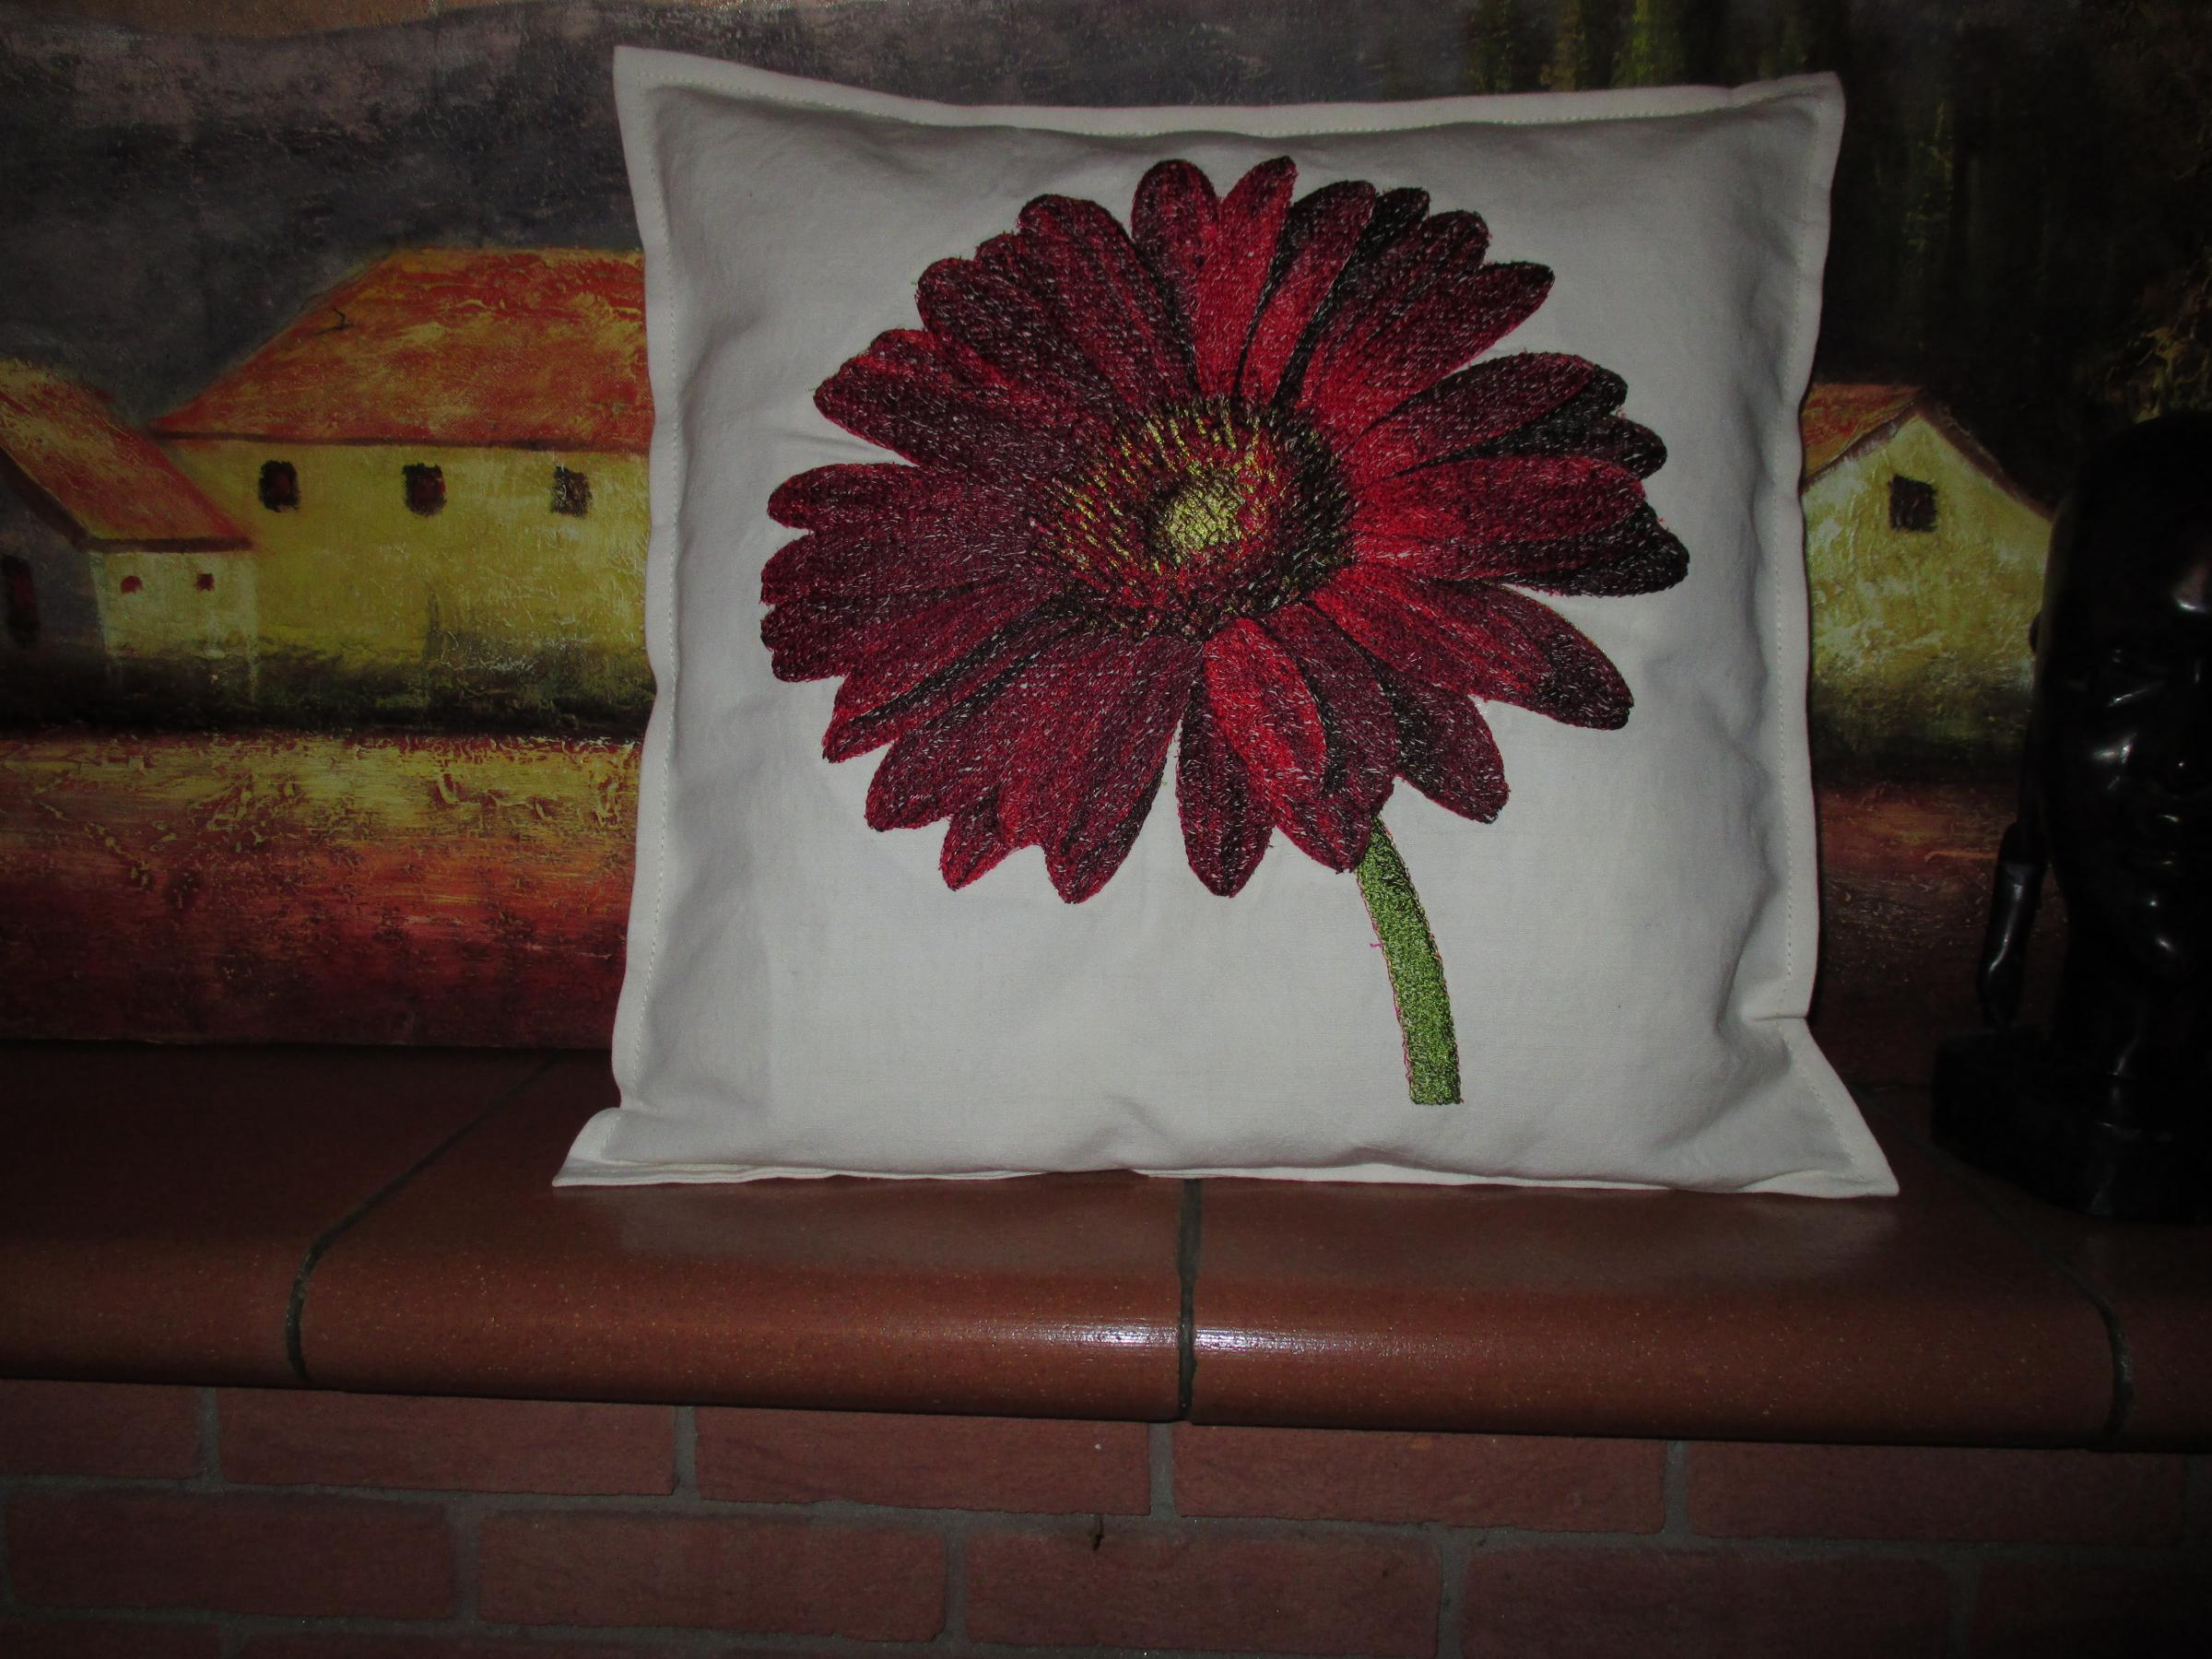 Embroidered cushion with Red flower design